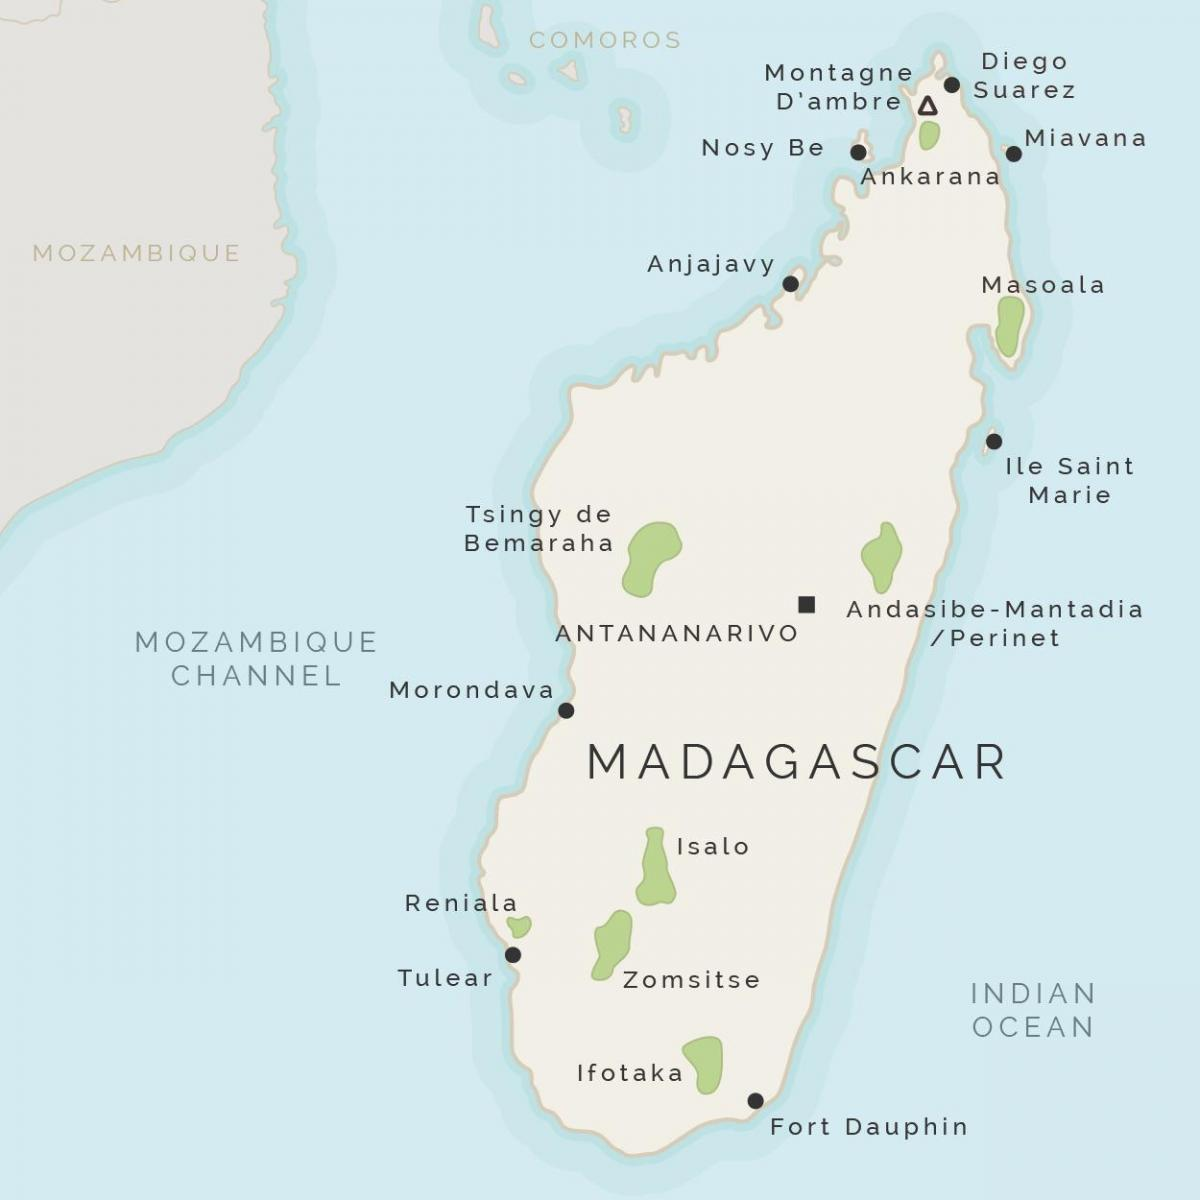 map of Madagascar and surrounding islands